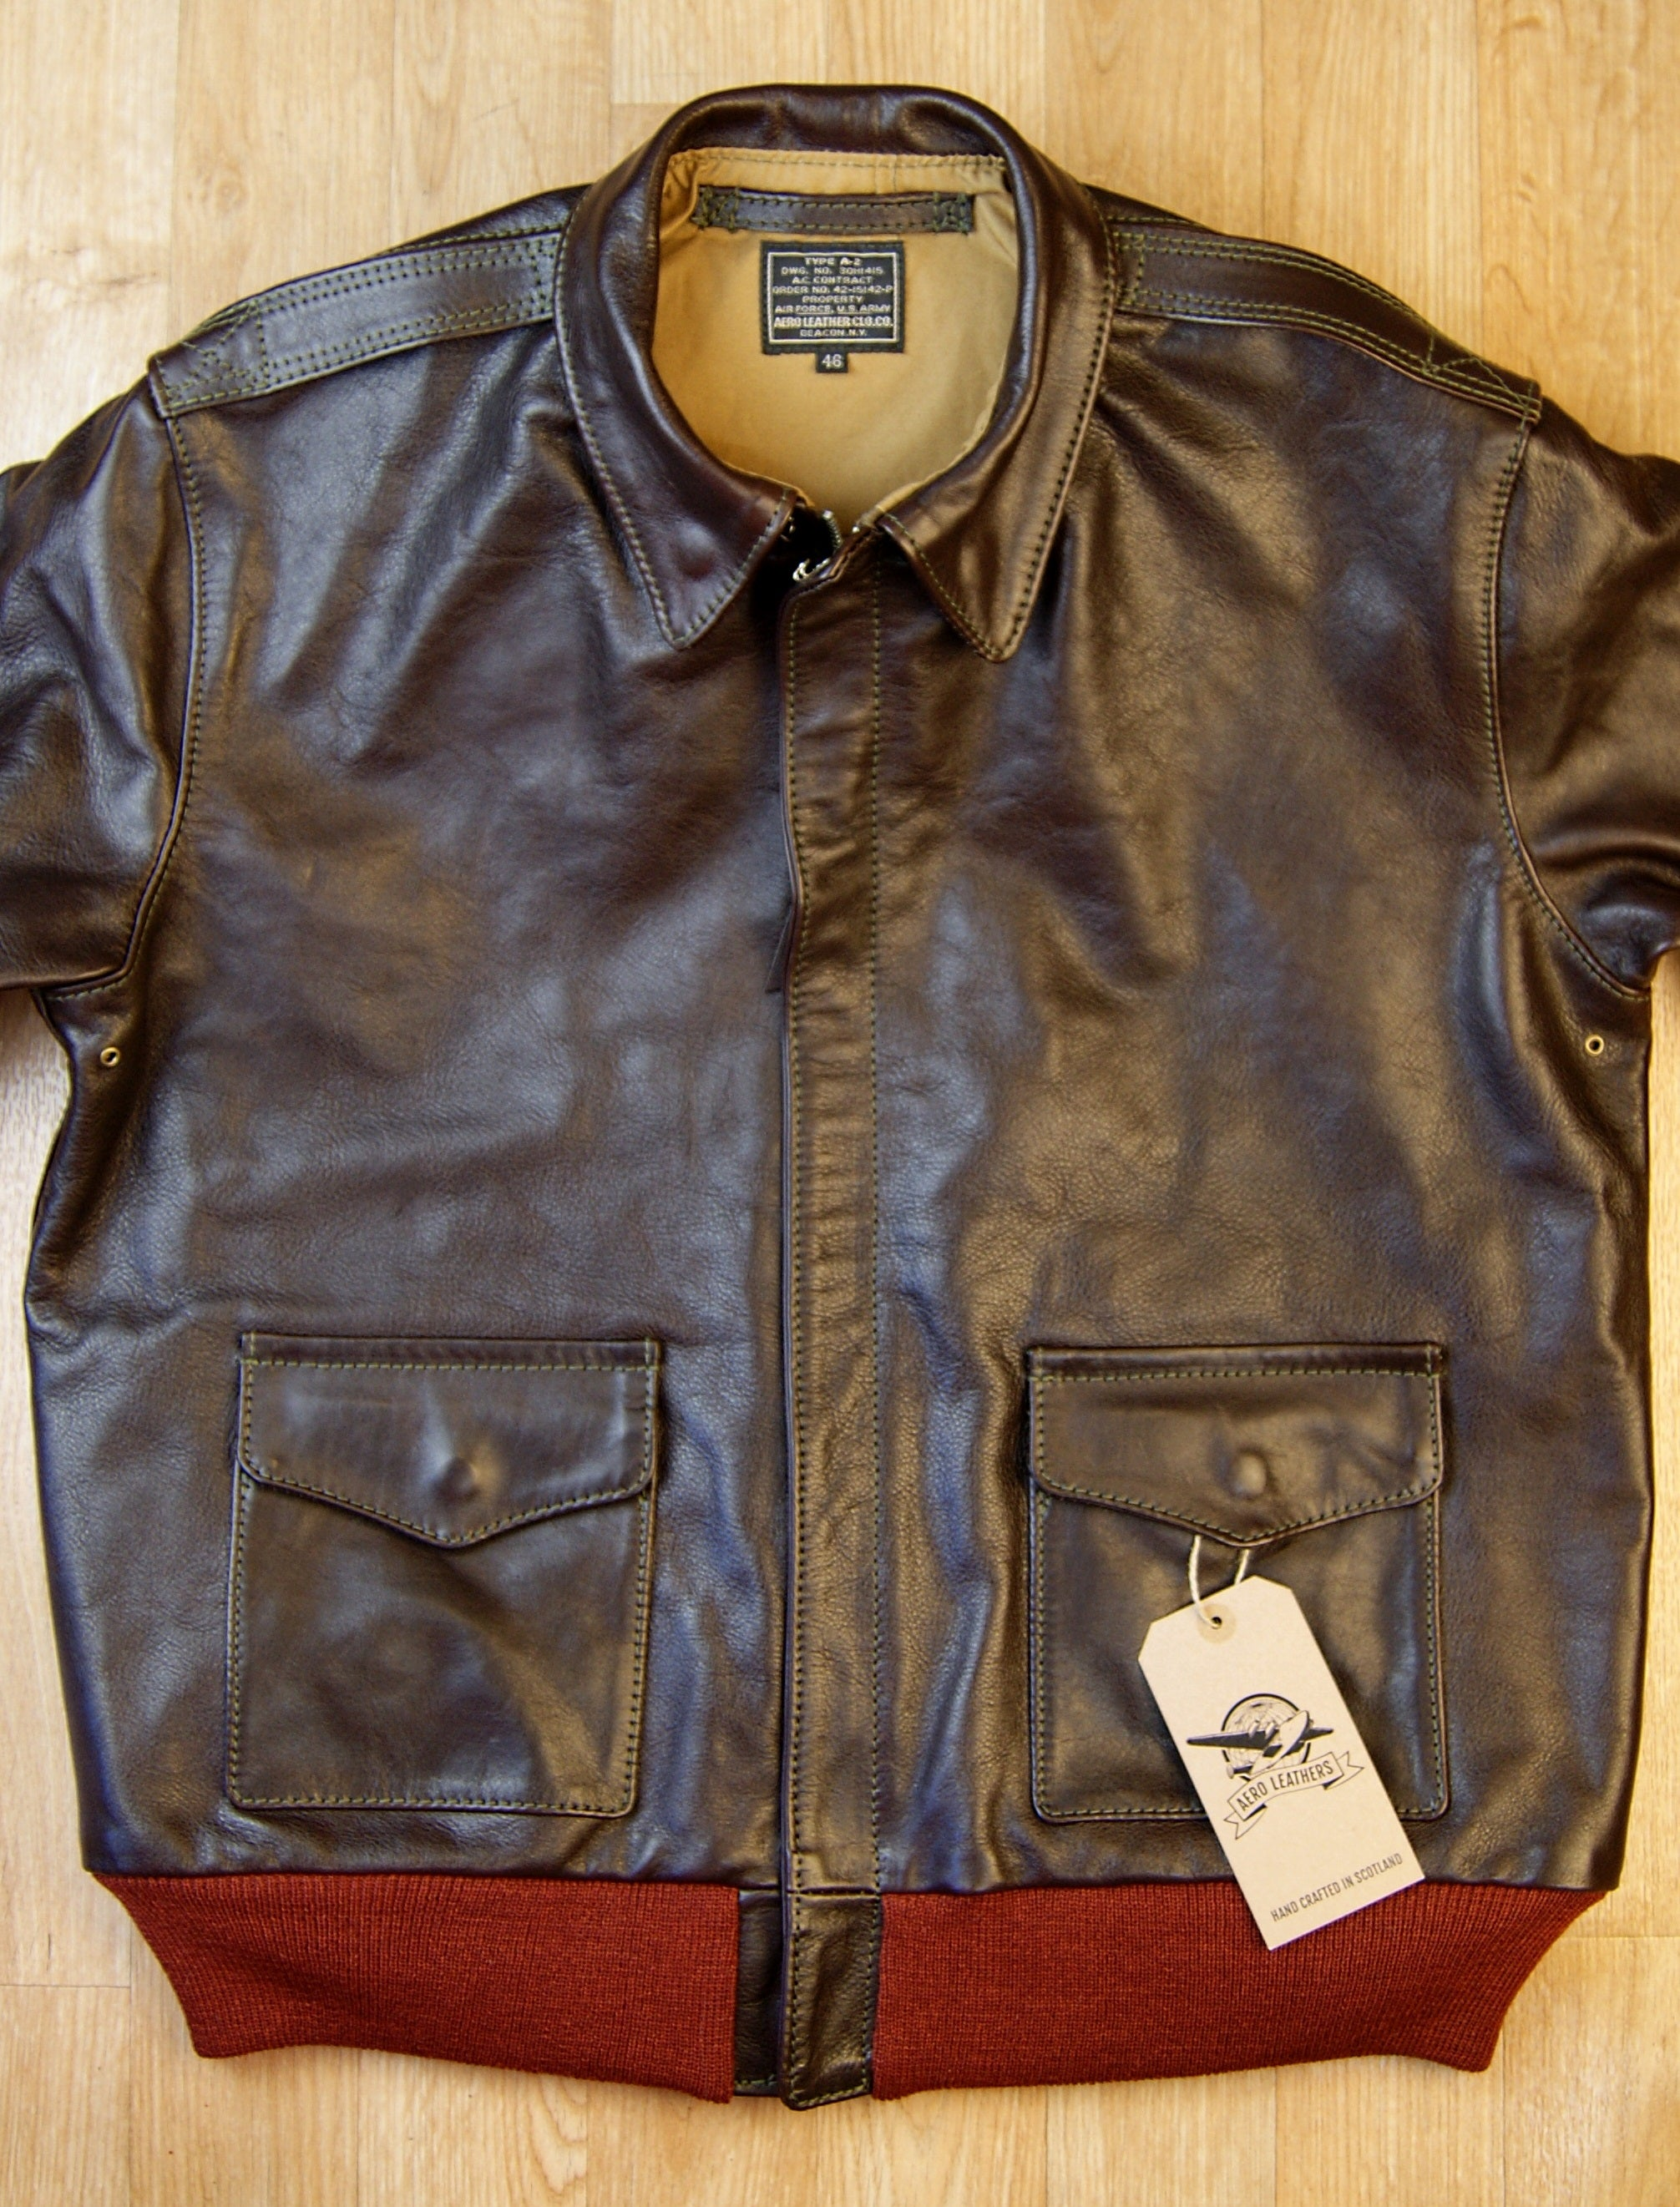 Aero A-2 Military Flight Jacket, size 46, Dark Seal Vicenza Horsehide